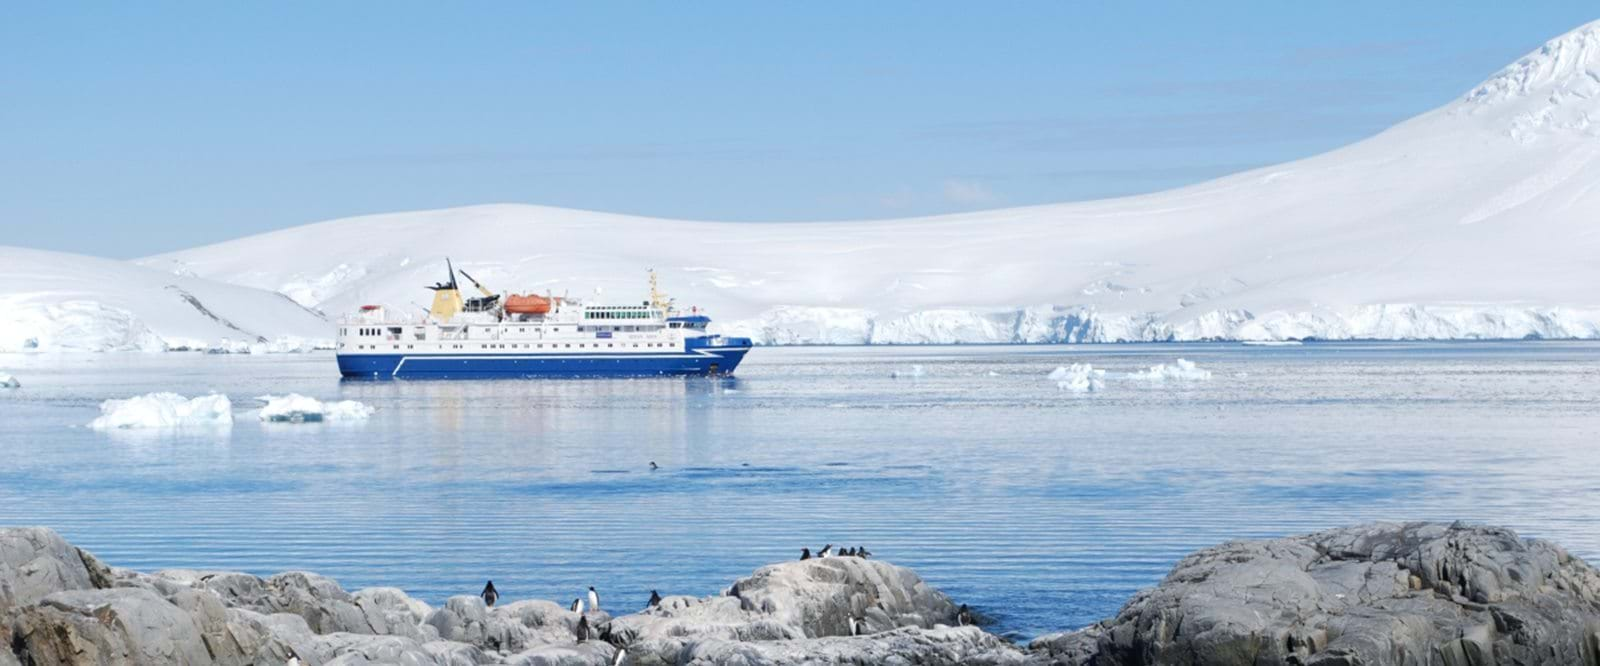 Ocean Nova, antarctica, expedition, cruise